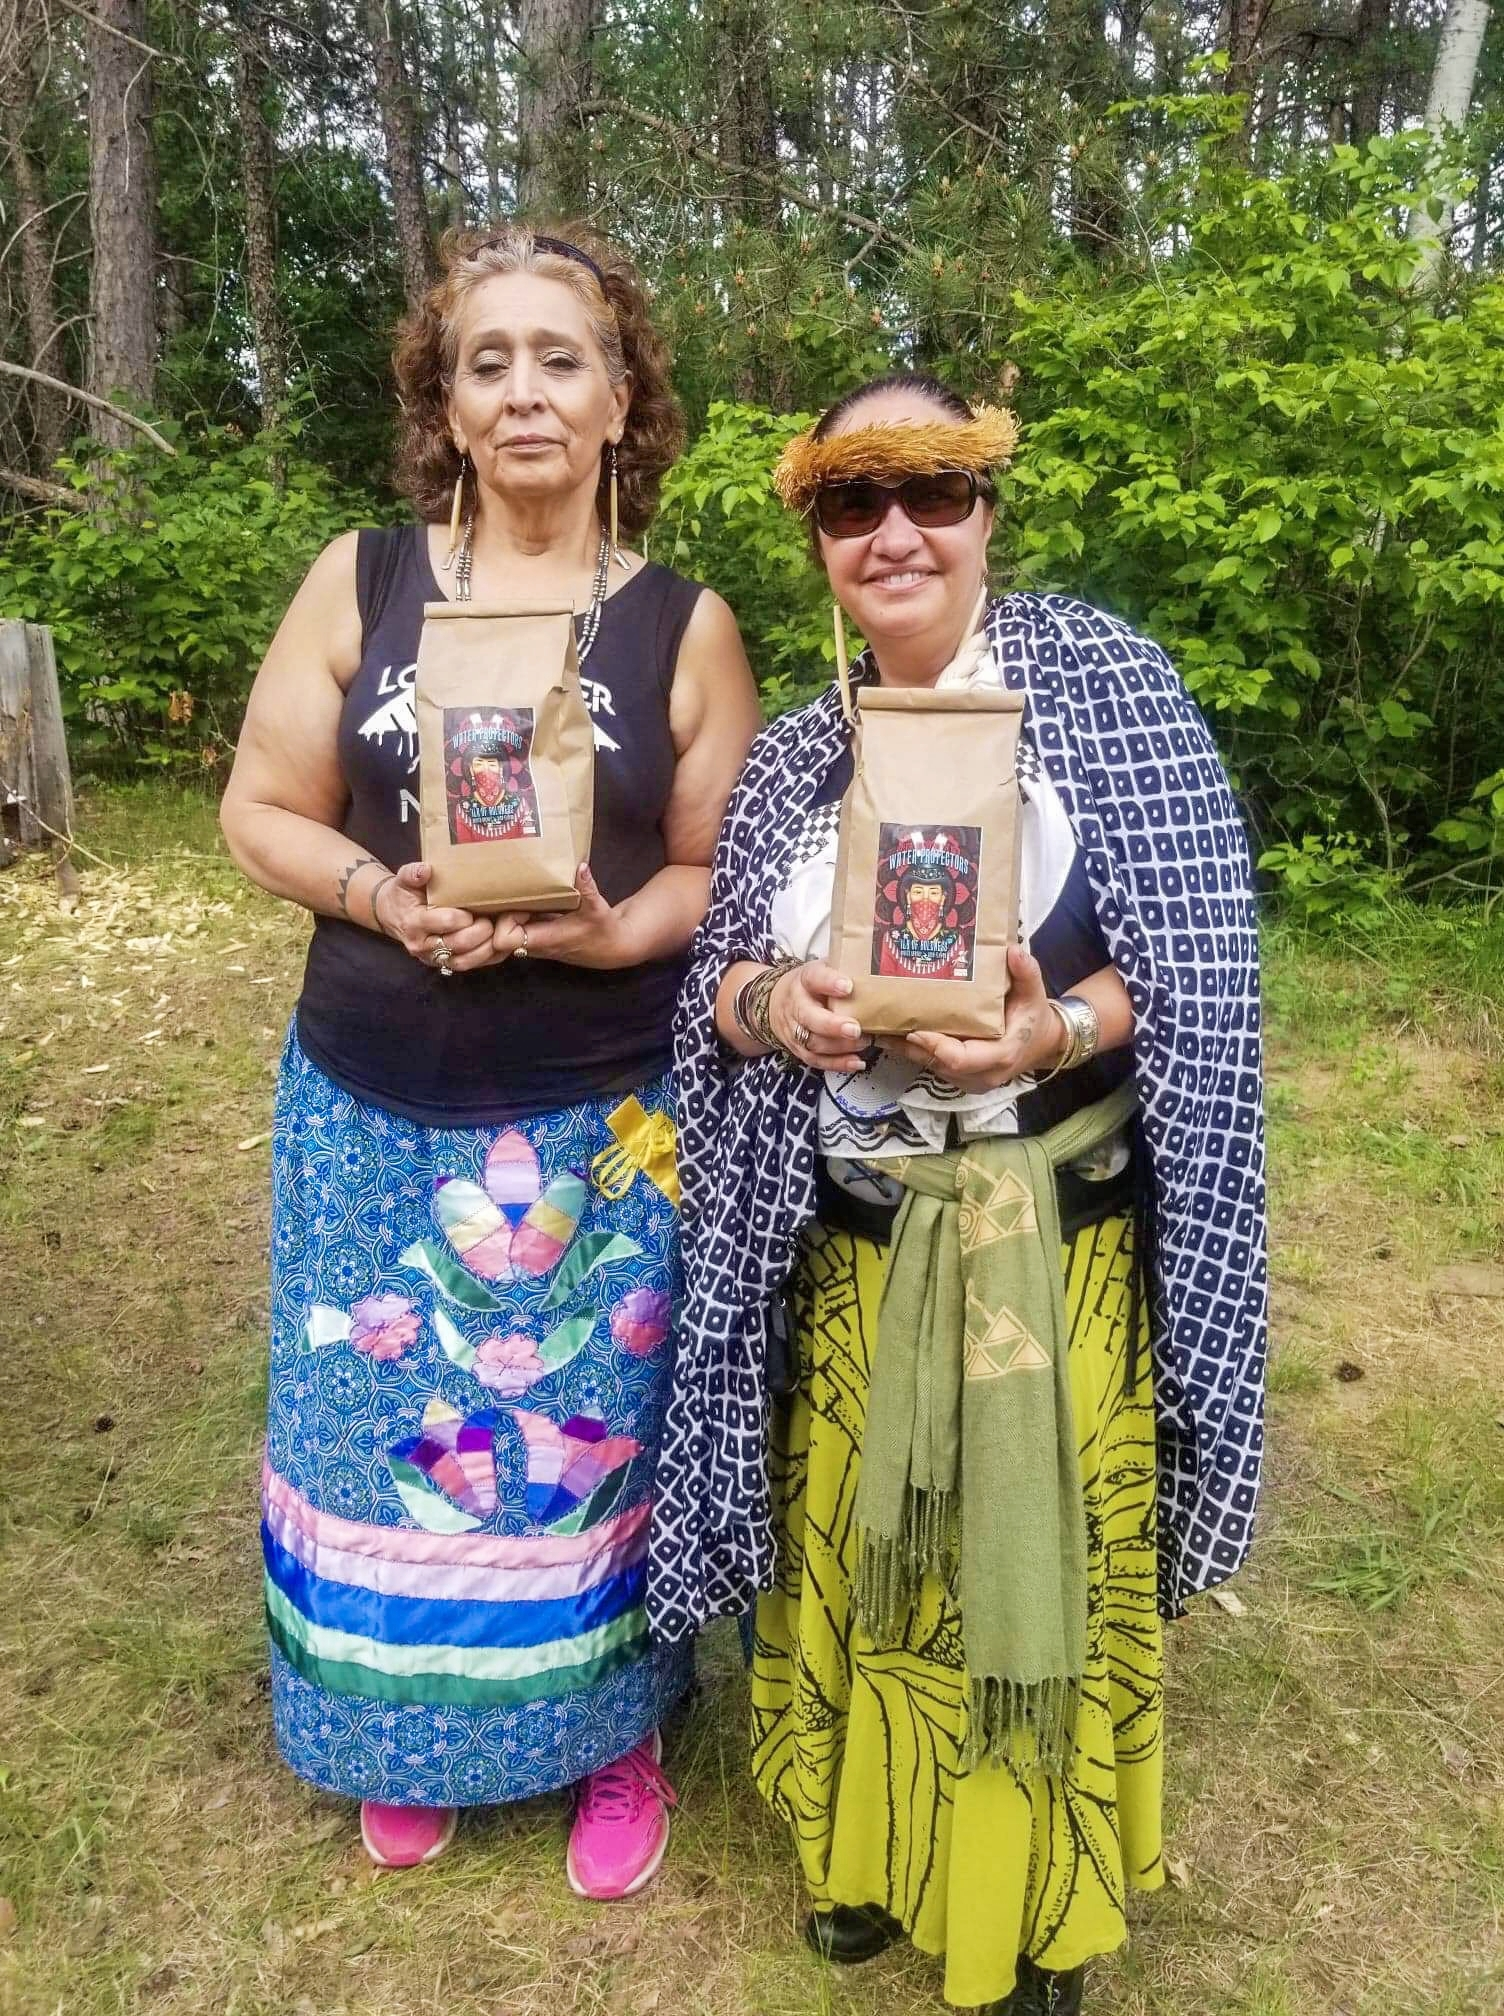 Women Water Protectors - From the highest mountain, Mauna Kea (Pua Case), to the hills, and rivers of Standing Rock (LaDonna Brave Bull Allard).